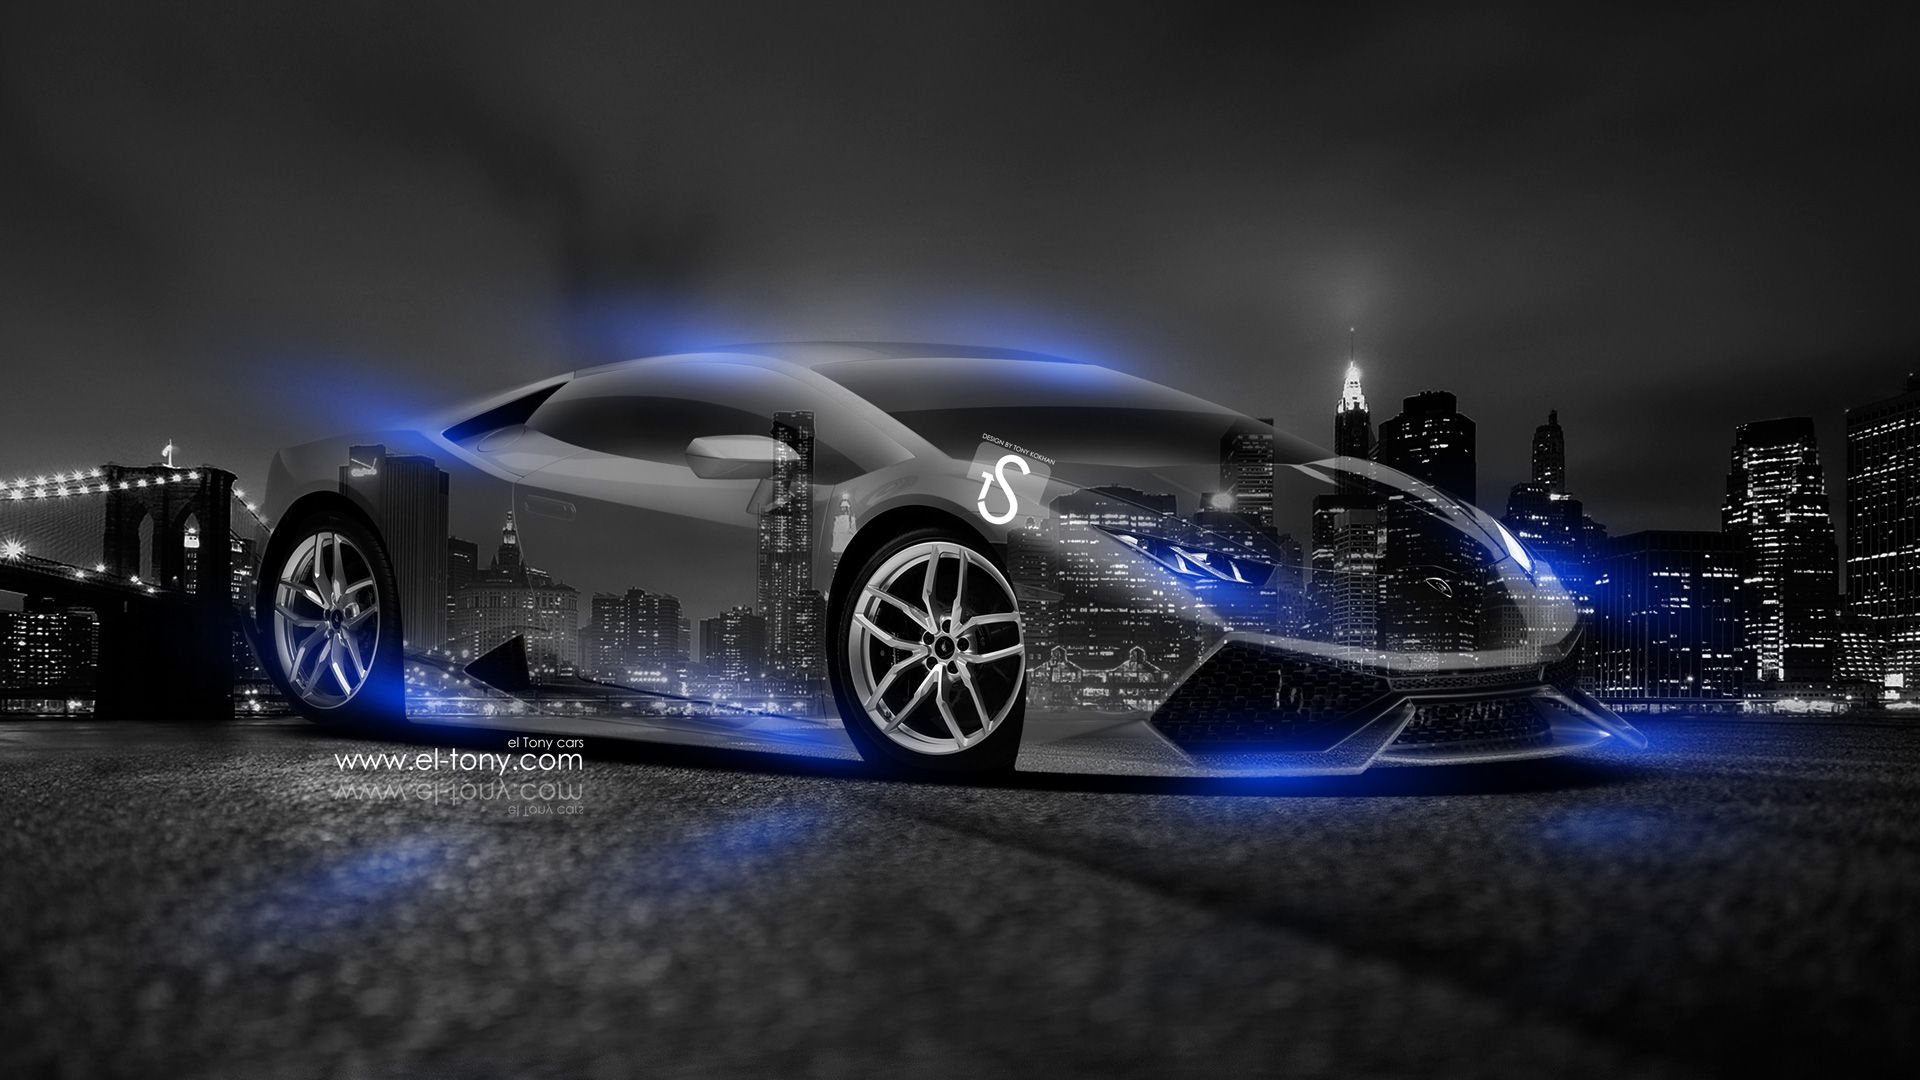 Bon Black Lamborghini With Neon Blue Lights | Lamborghini Huracan Crystal City  Car